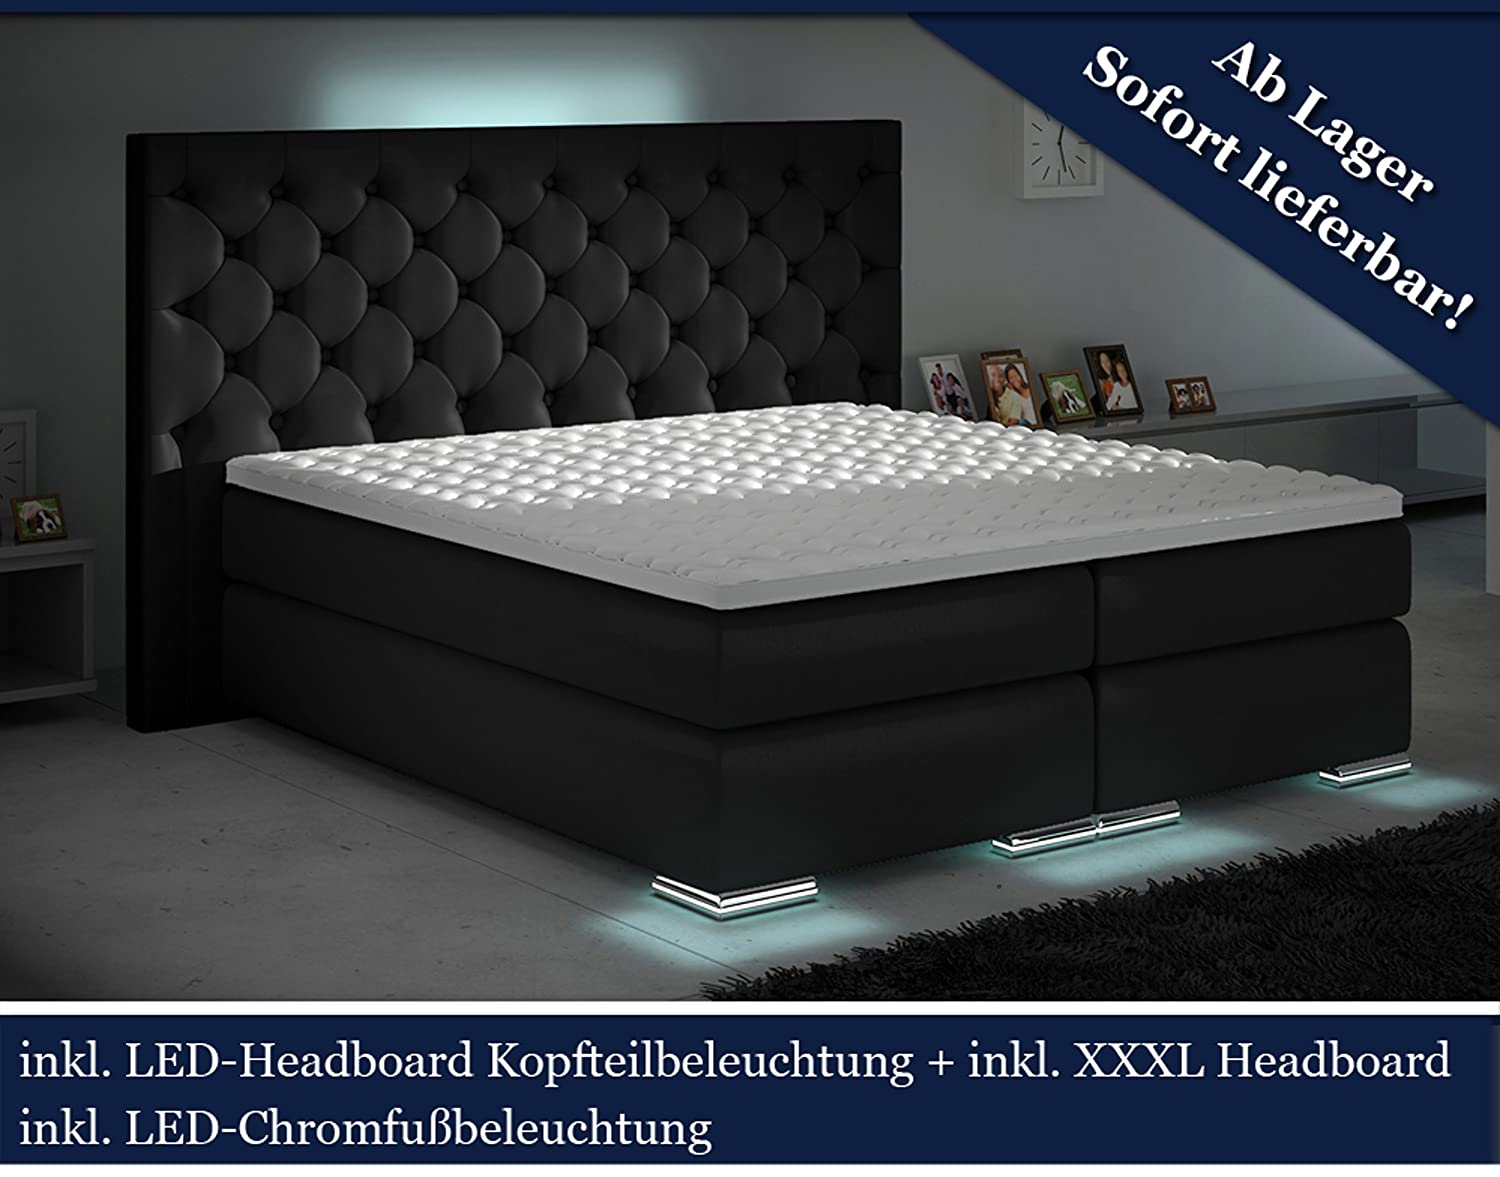 xxxl boxspringbett designer boxspring bett led schwarz chesterfield schwarz 200x200 bestellen. Black Bedroom Furniture Sets. Home Design Ideas